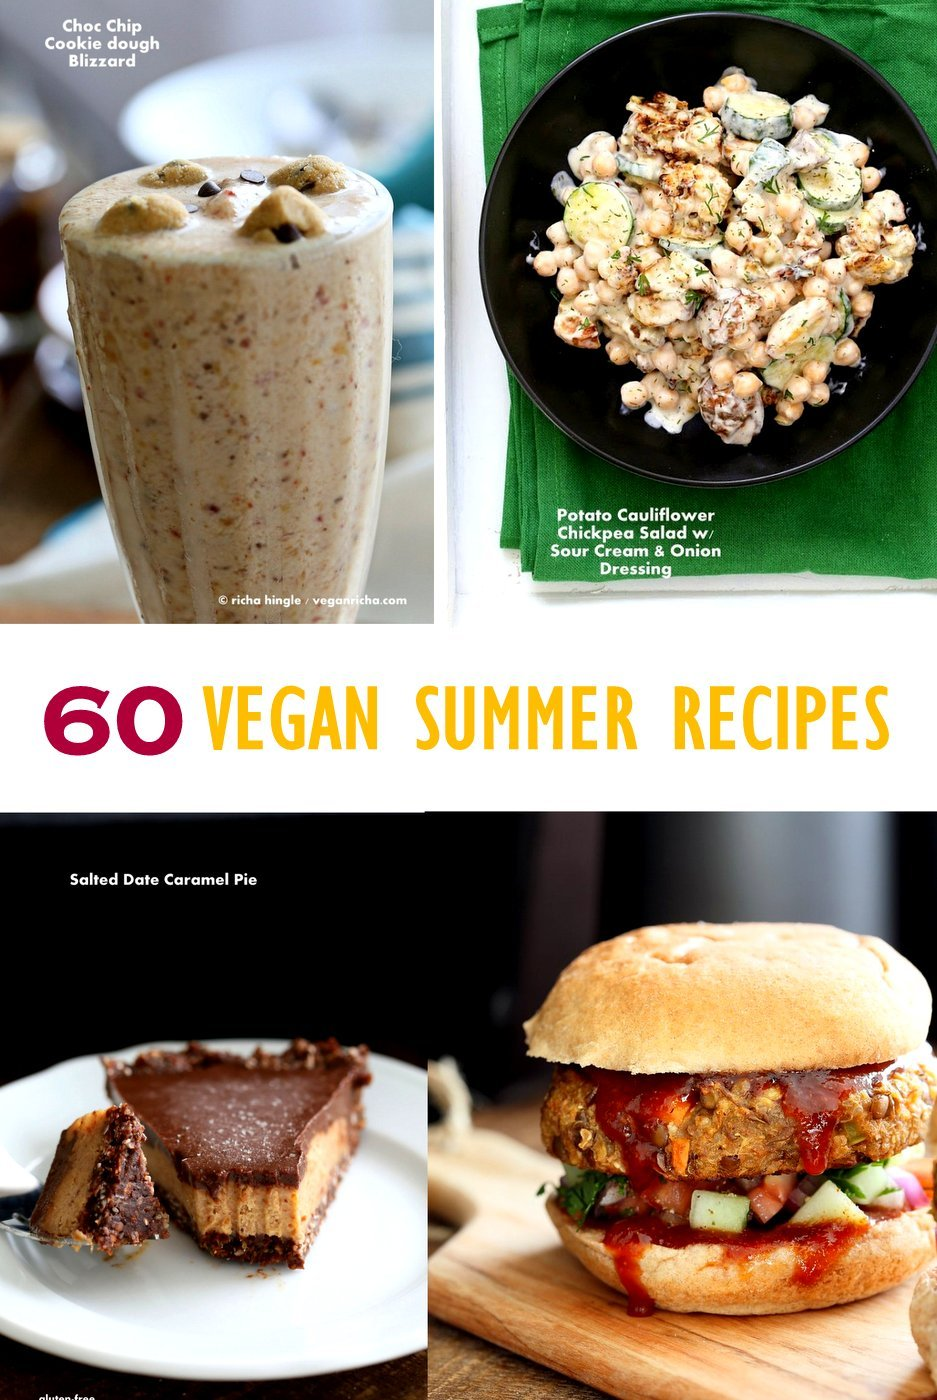 60 vegan summer recipes for barbecue grilling potlucks vegan richa vegan summer recipes for barbecue grill picnics grill able burgers filling forumfinder Gallery